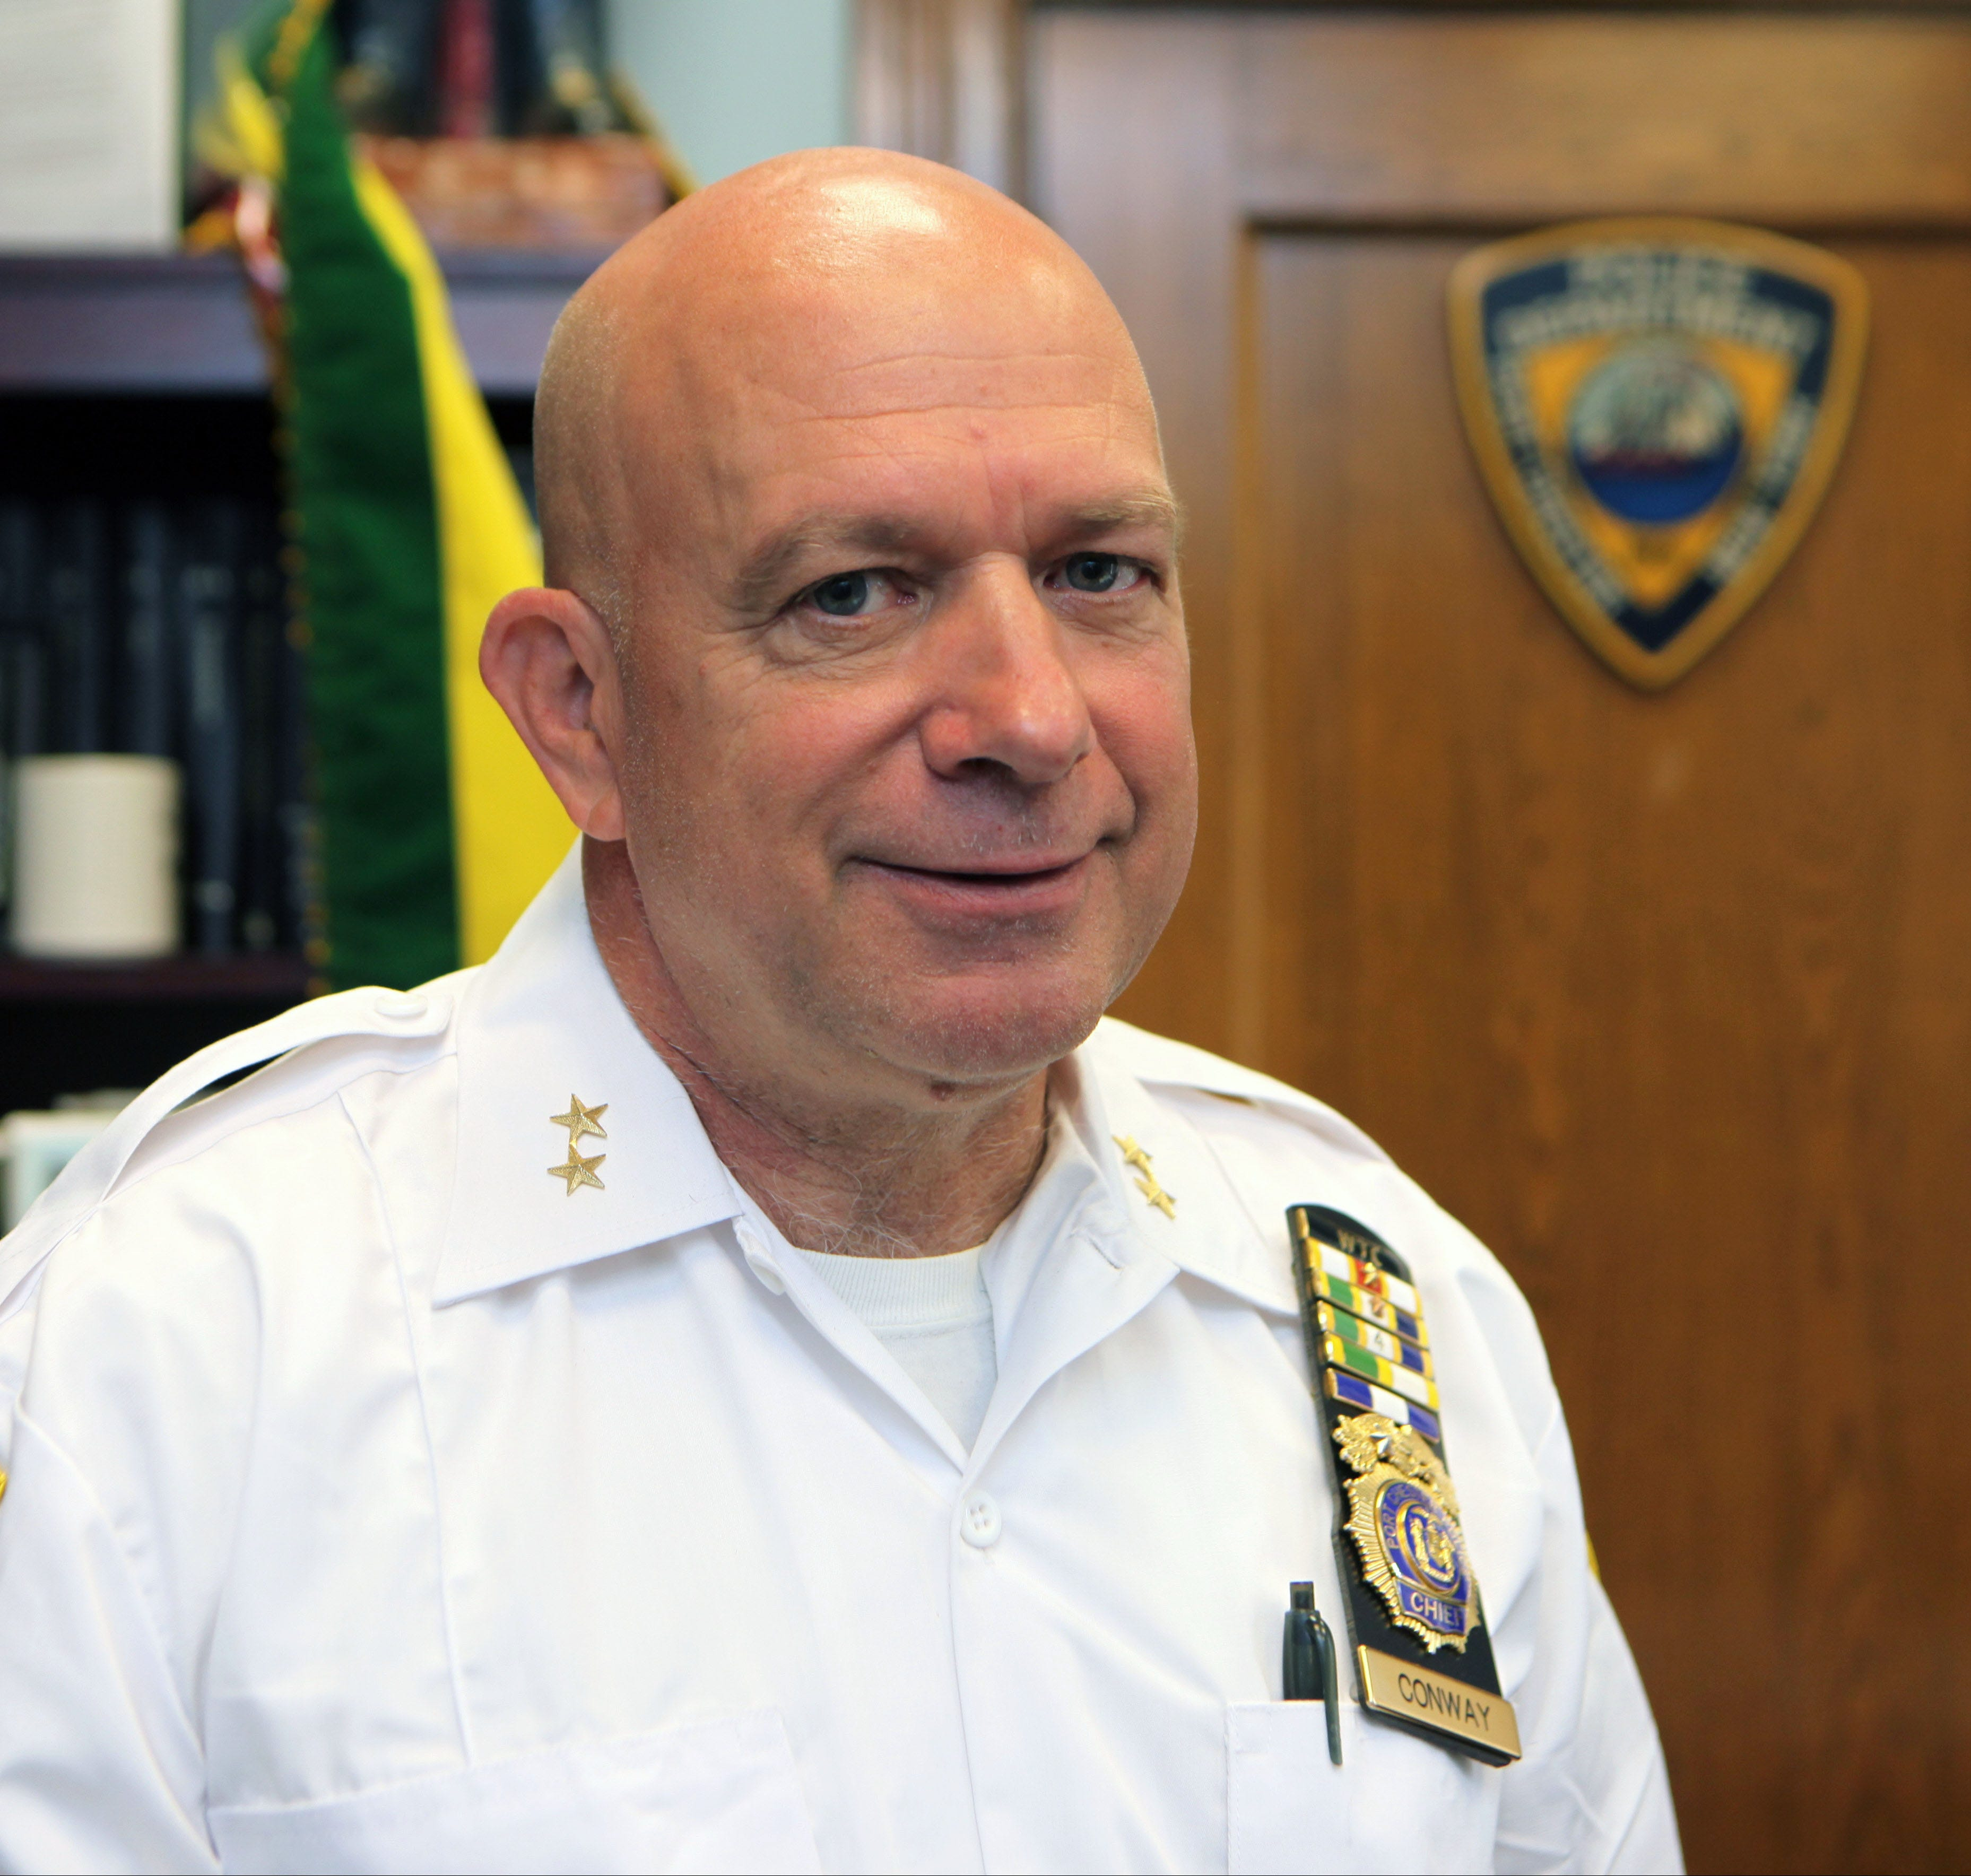 Port Chester Police Chief Richard F. Conway, photographed June 21, 2017, cashed in days worth $113,343 when he retired. In retrospect, he said he wished he'd taken more days off instead of banking them.